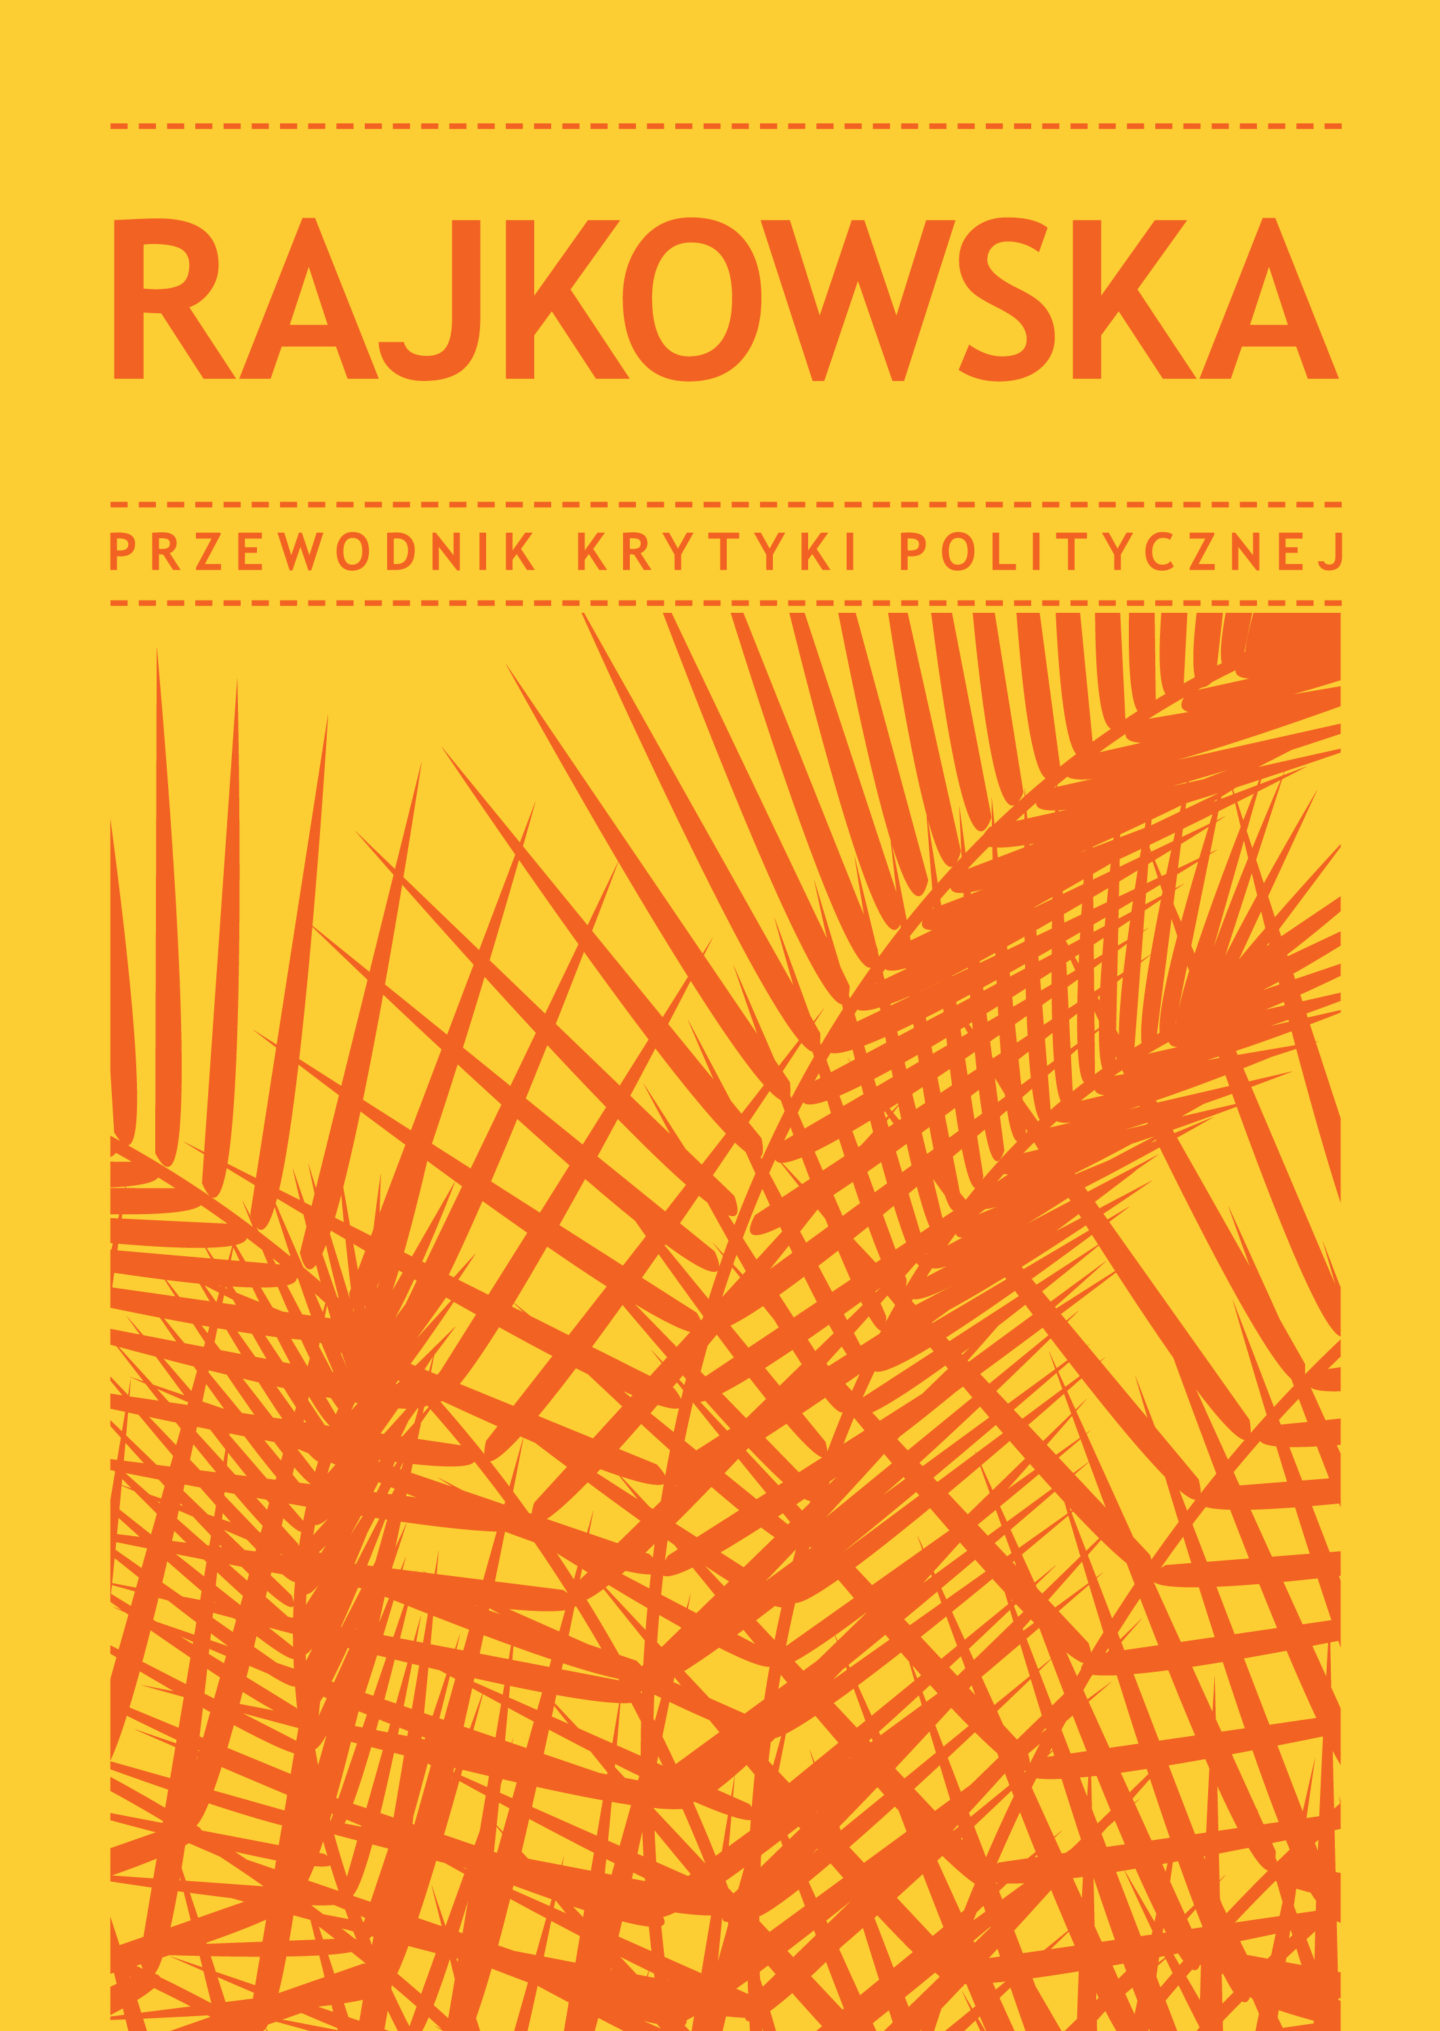 Rajkowska: A Political Critique Guide